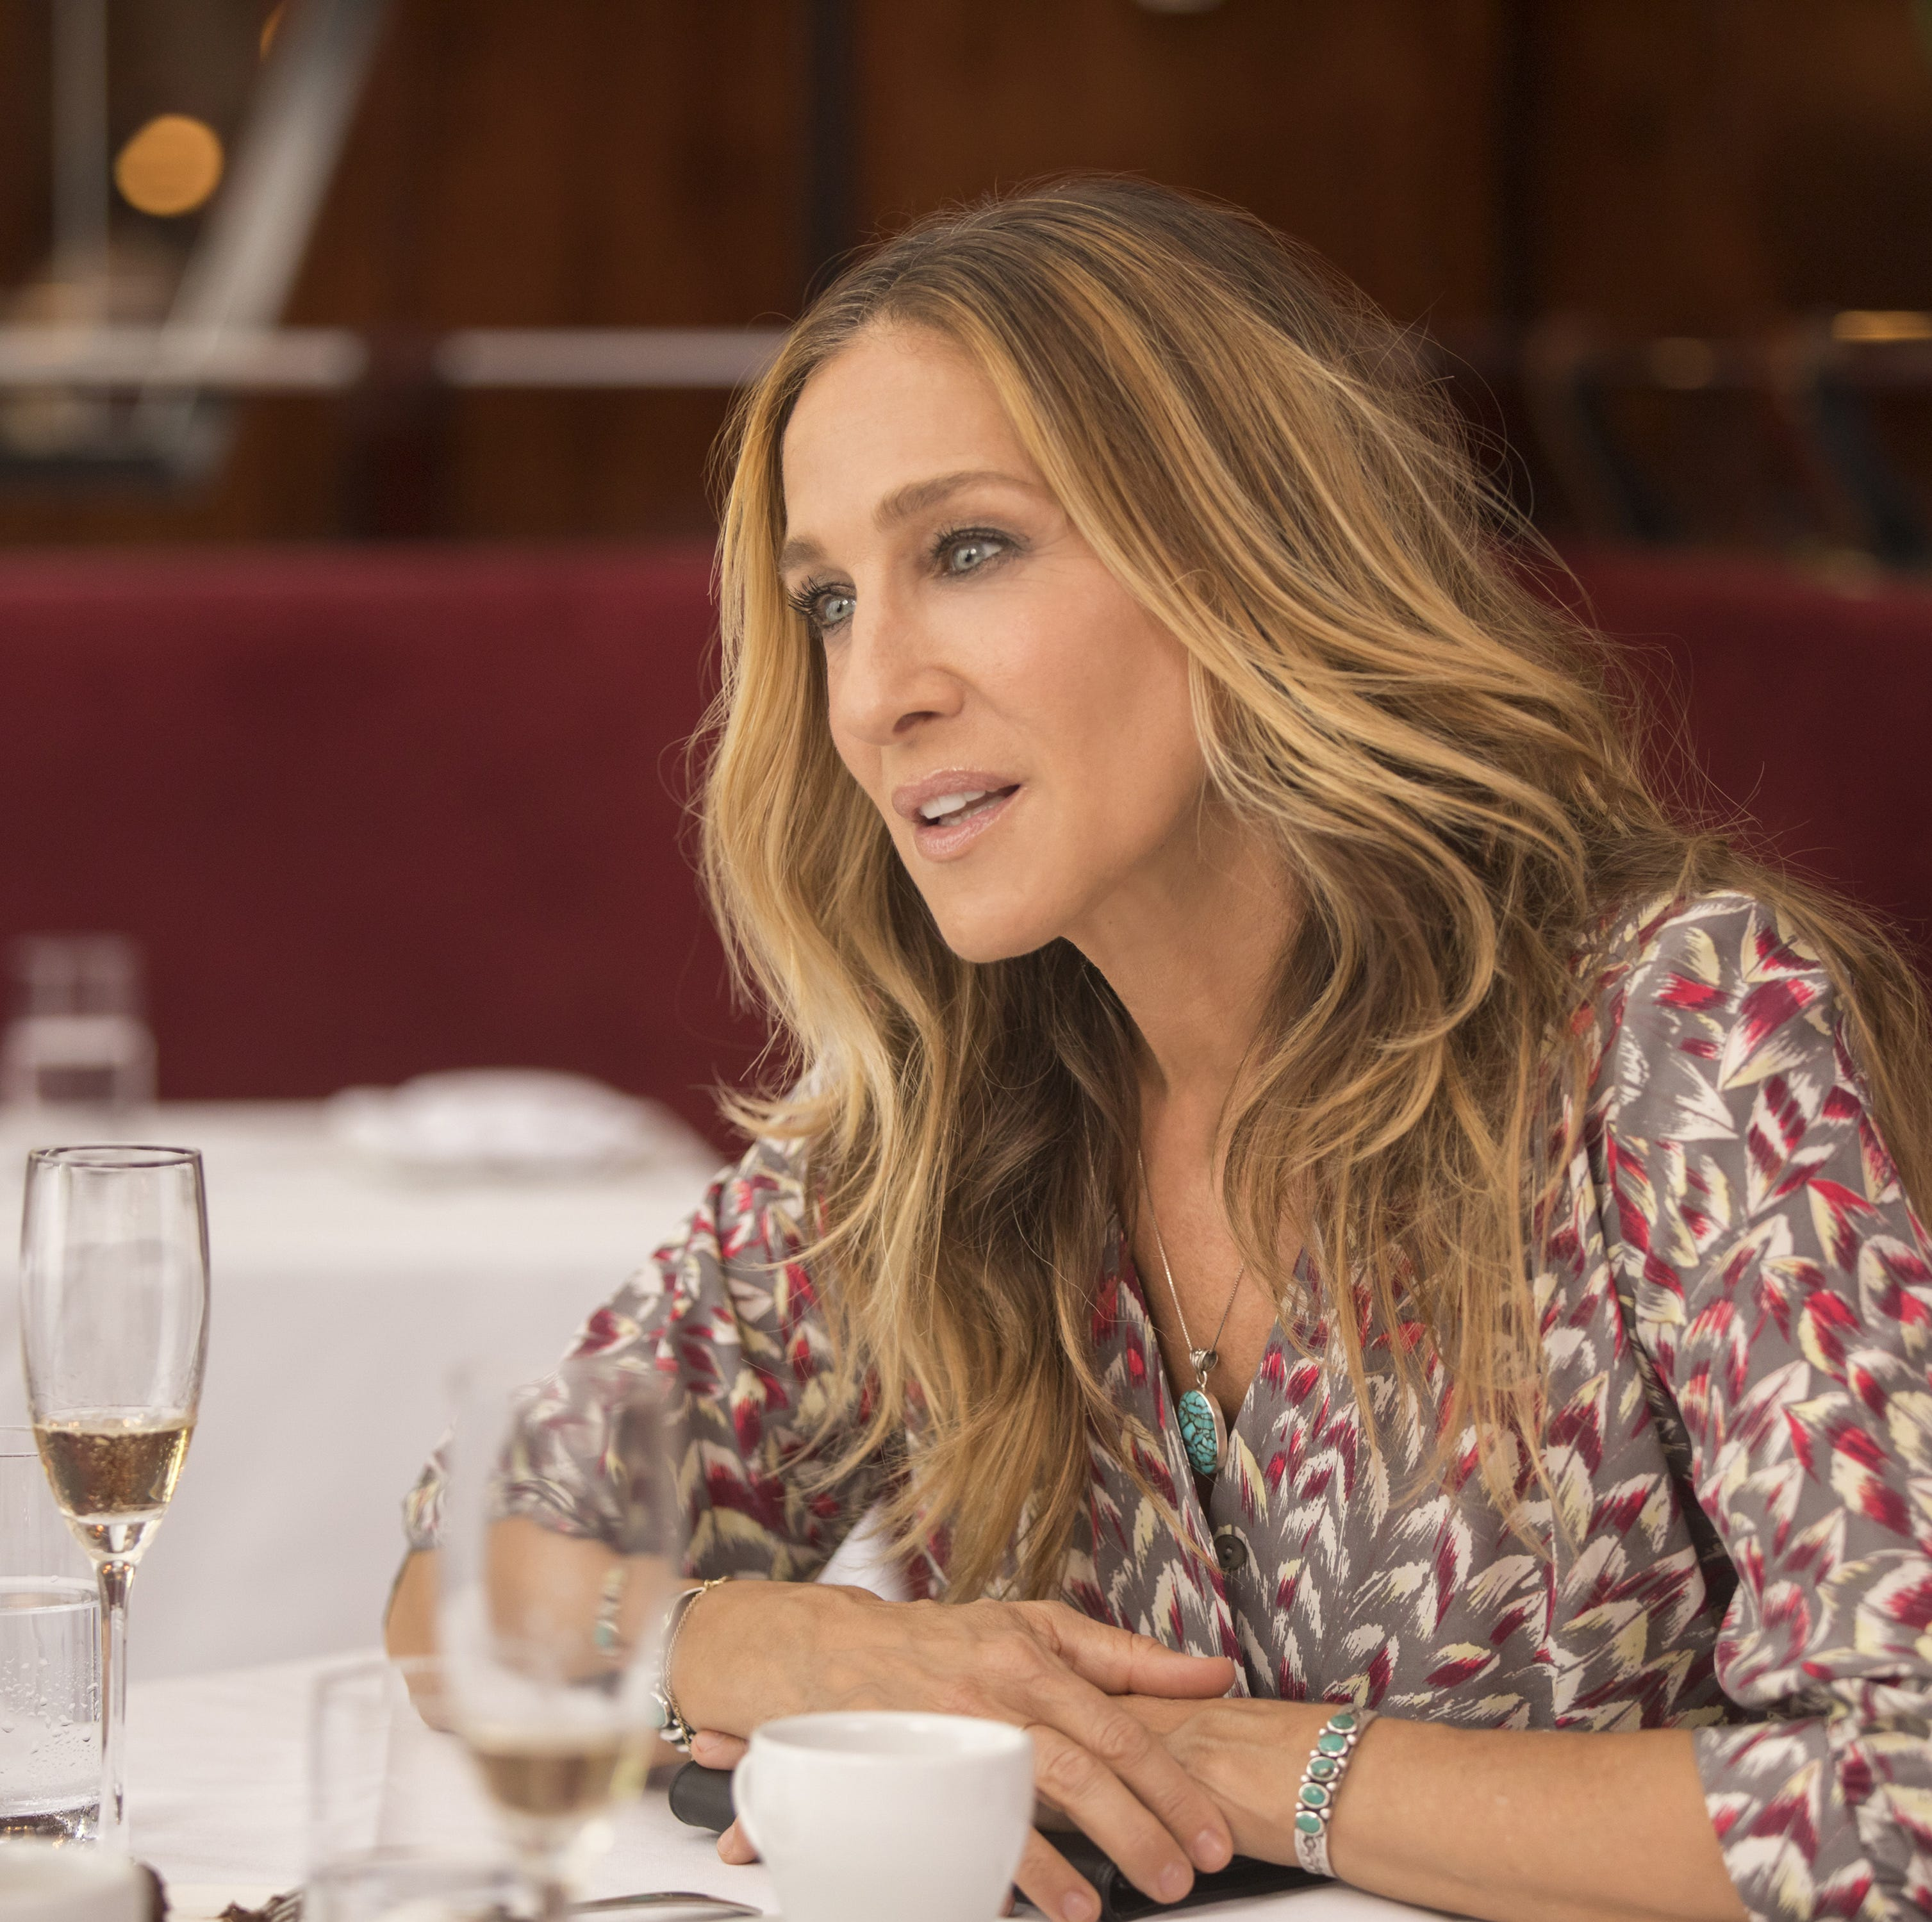 Sarah Jessica Parker's 'Divorce' filming in Tarrytown today